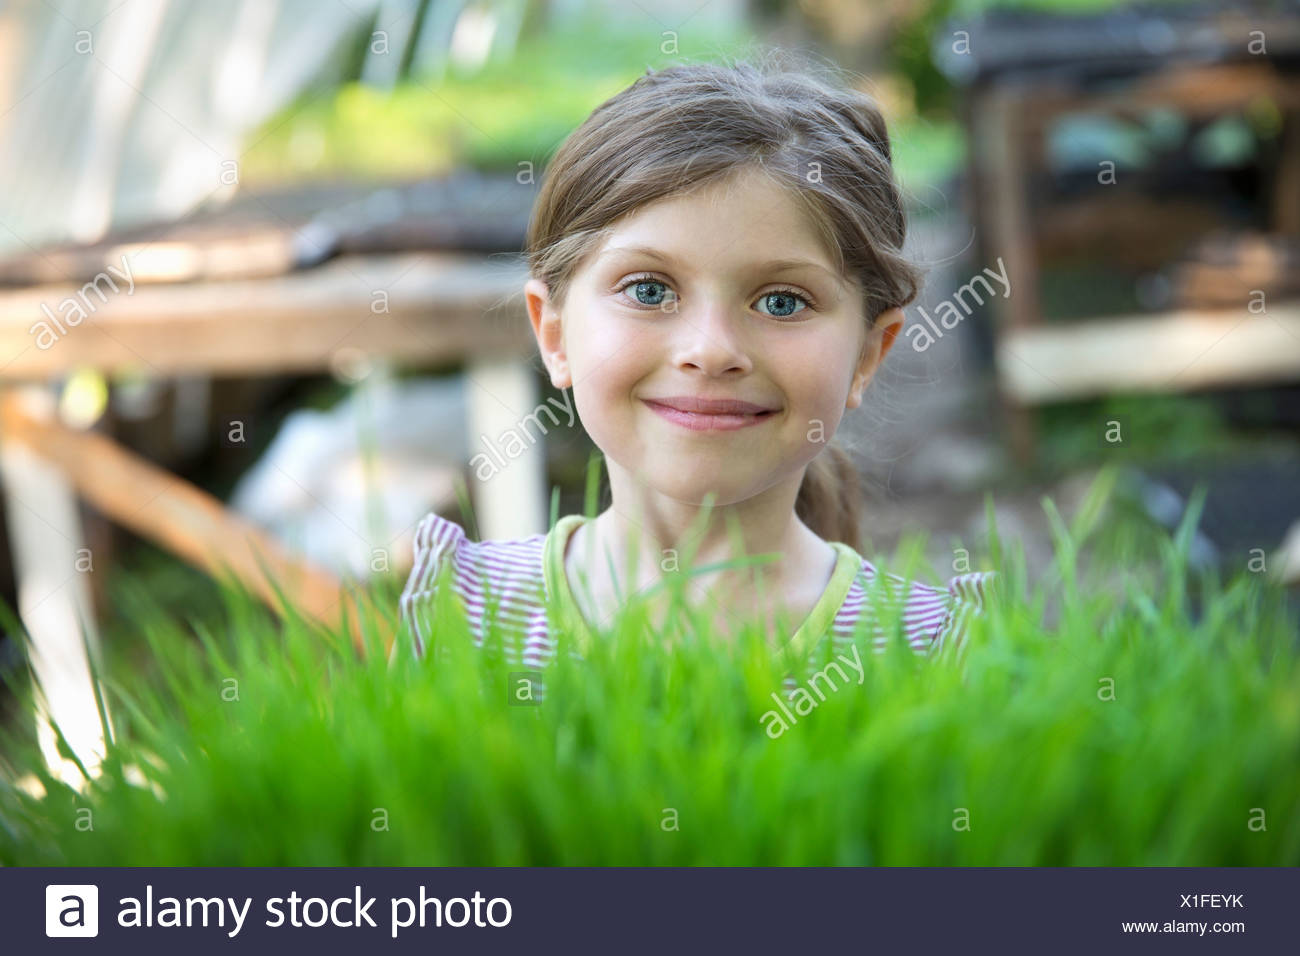 On the farm. A girl standing smiling by a glasshouse bench looking over the green shoots of seedlings growing in trays. - Stock Image